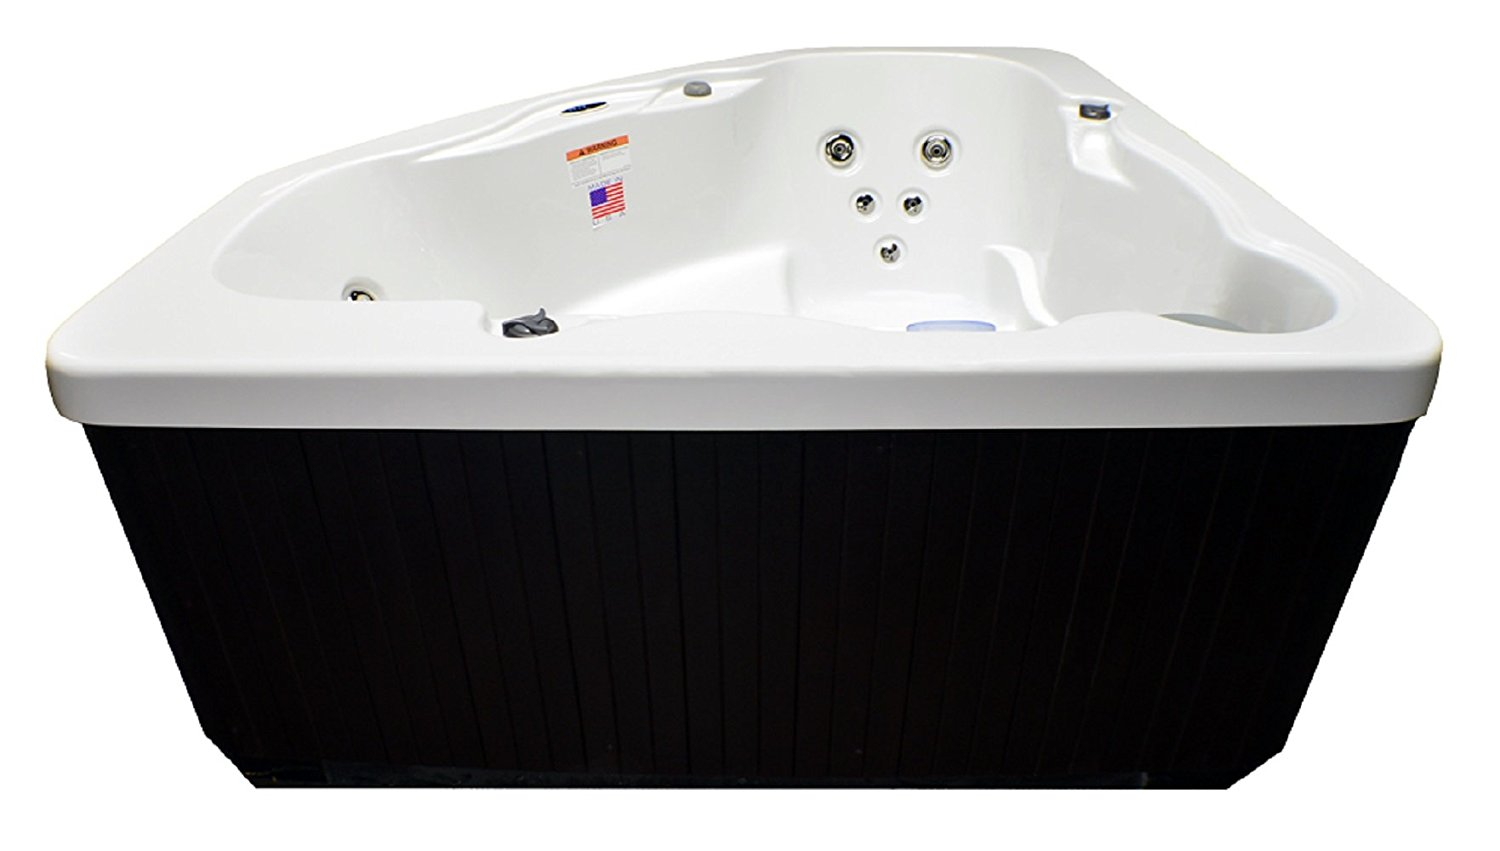 Home And Garden Spas Lpi14xc 3 Person 14 Jet Corner Spa Plug Play With Gfci Cord Included Ivory White